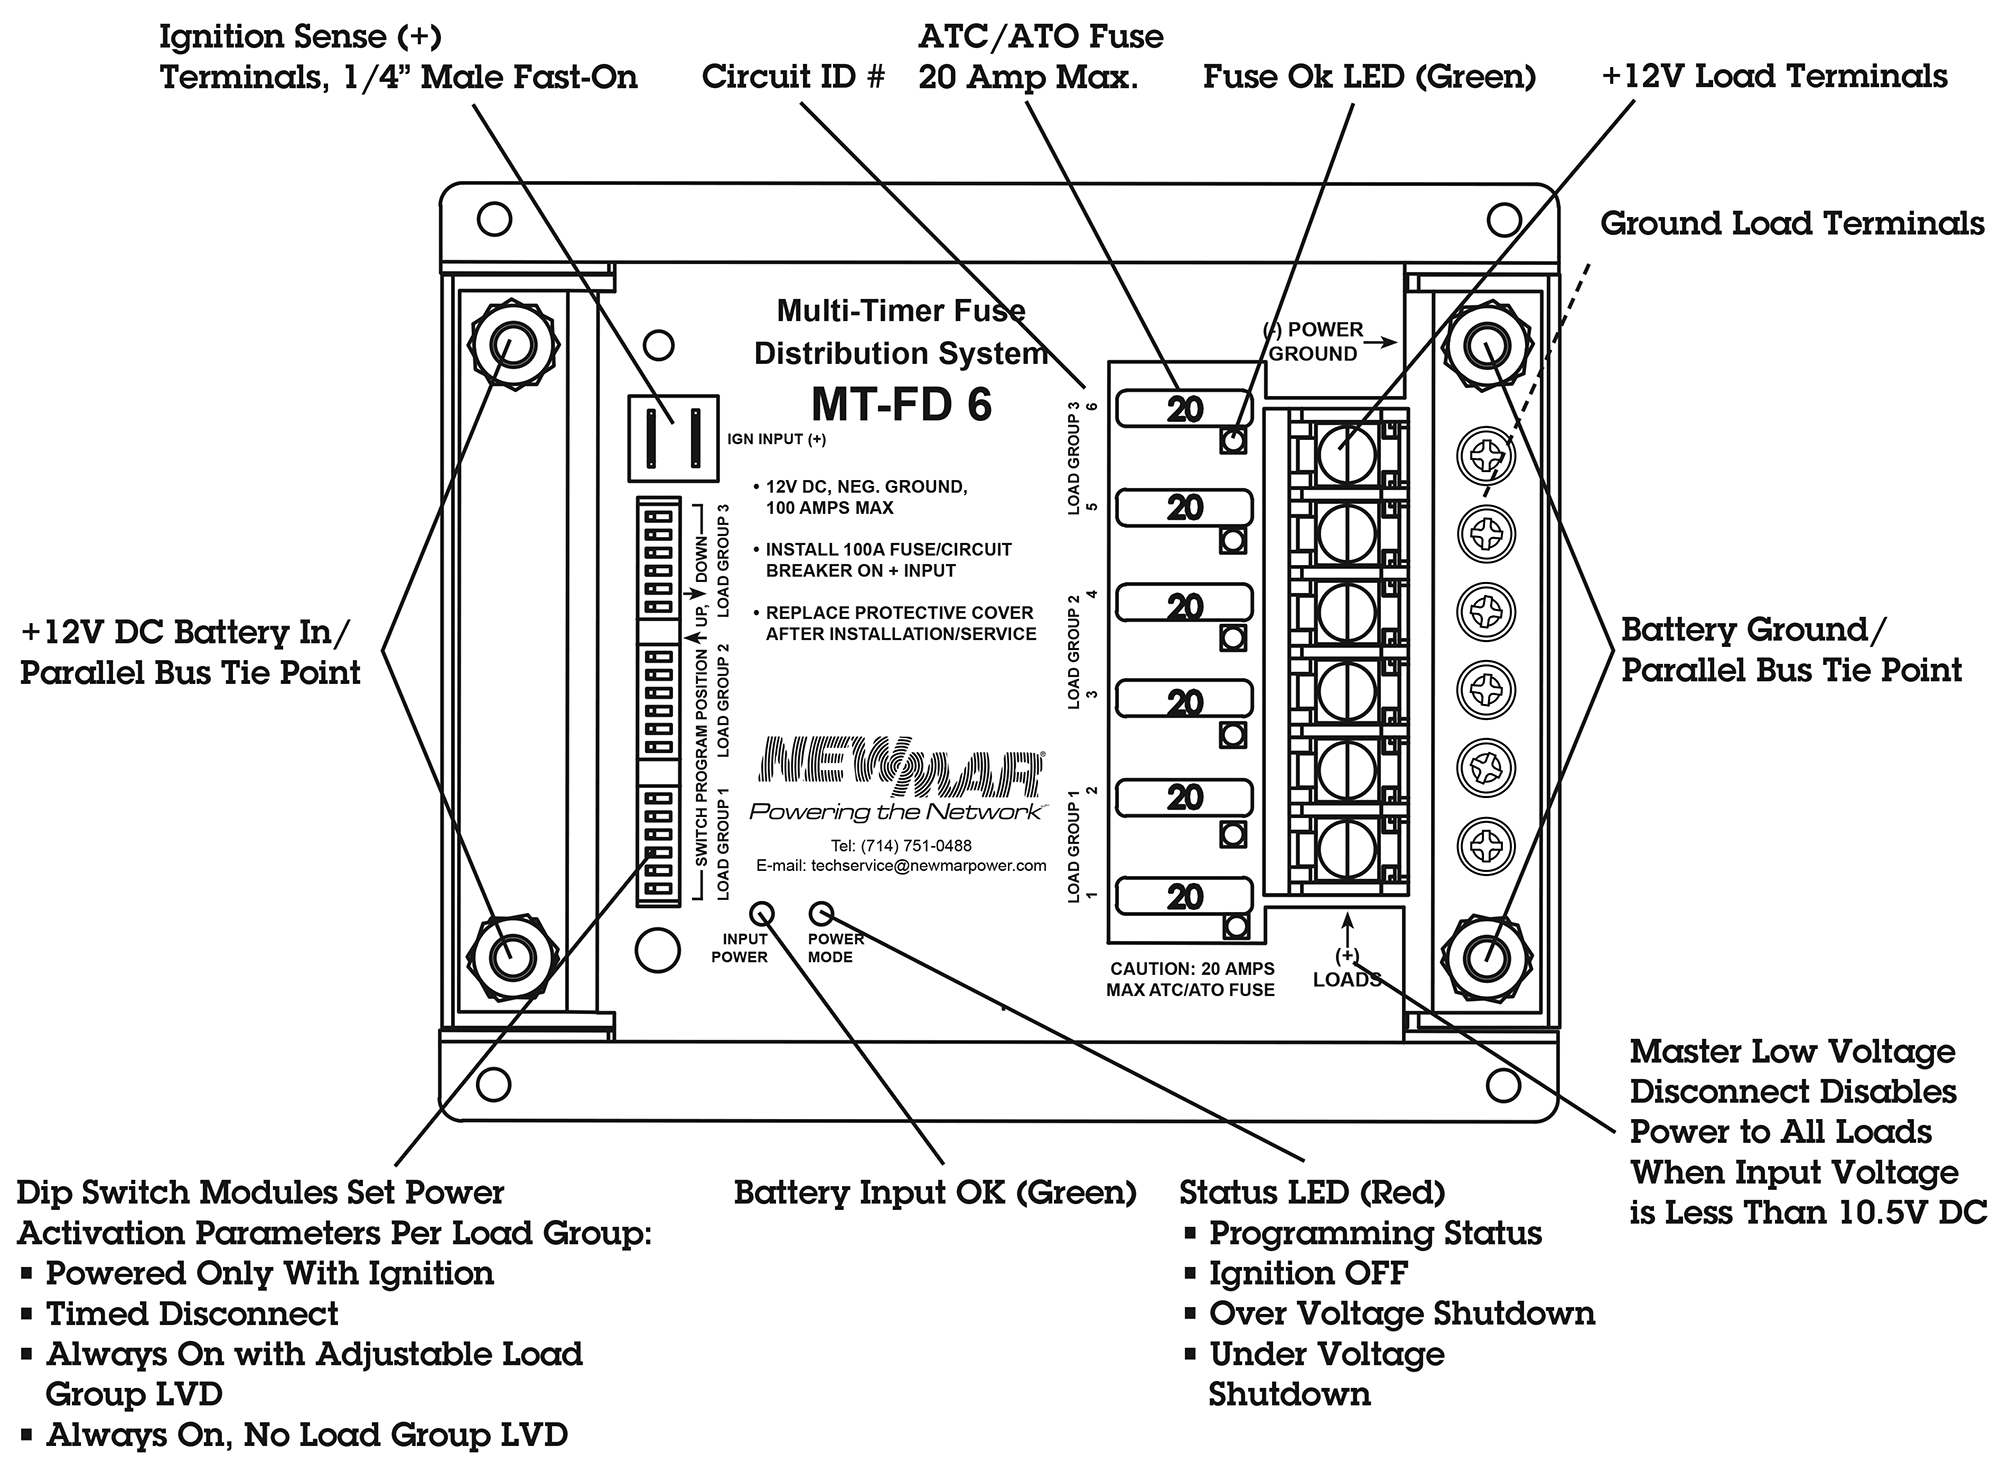 centurion cs 3000 power converter wiring diagram centurion 3000 power converter manual